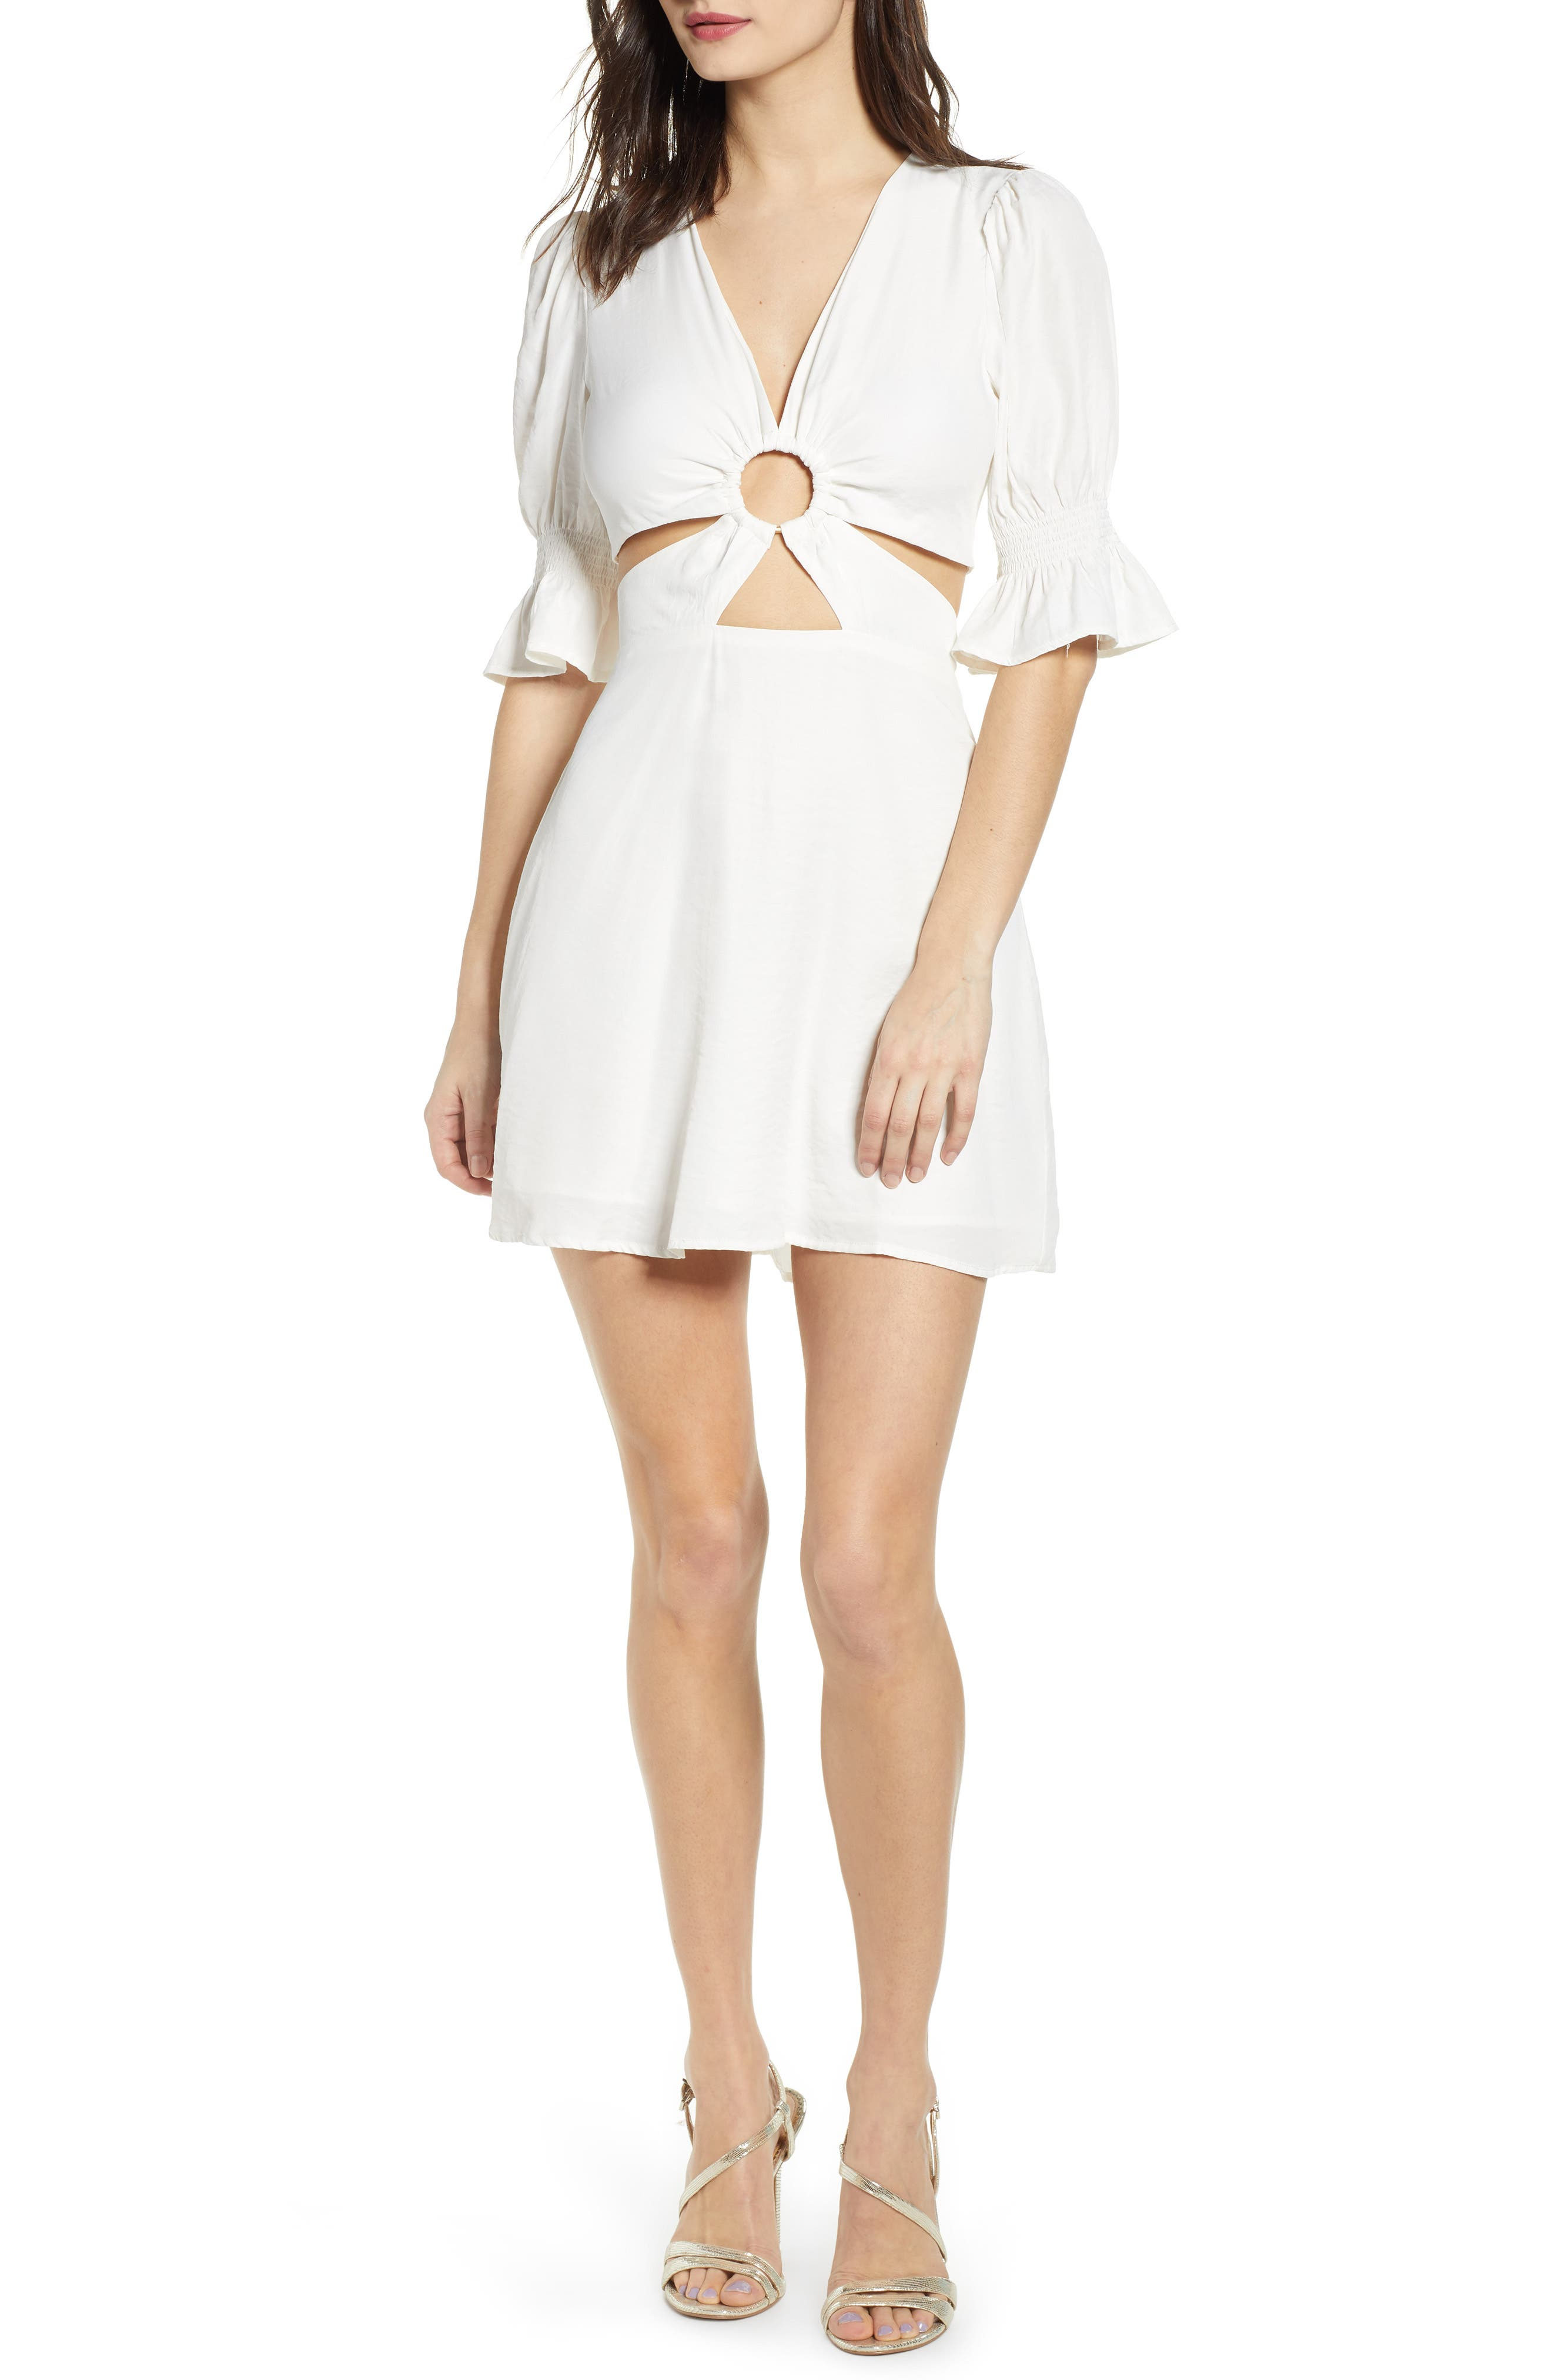 J.o.a. Minidress, Ivory